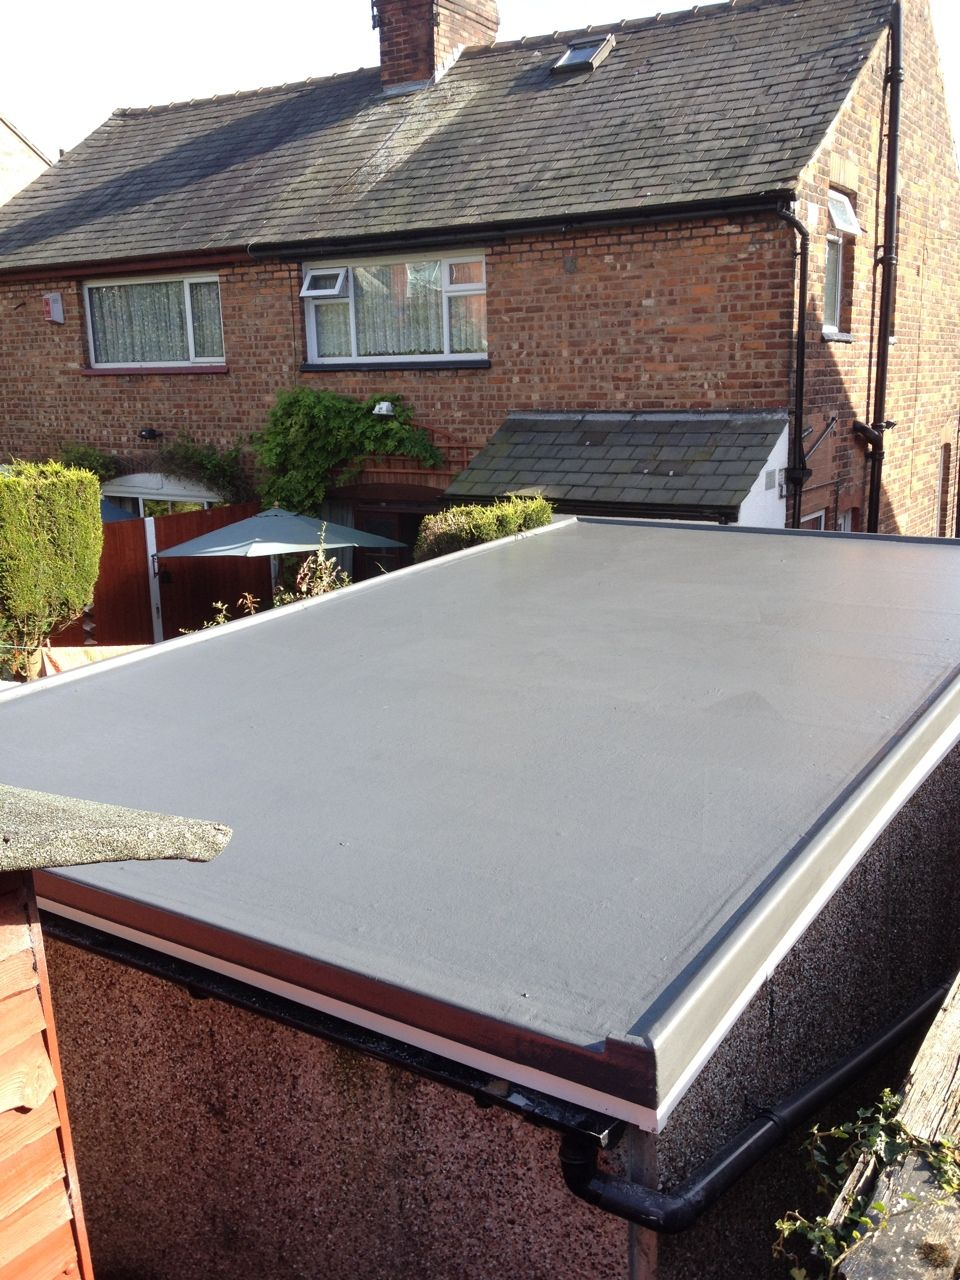 GRP Roofing To Garage Roof In Manchester, A Complete Transformation Of This Garage  Flat Roof